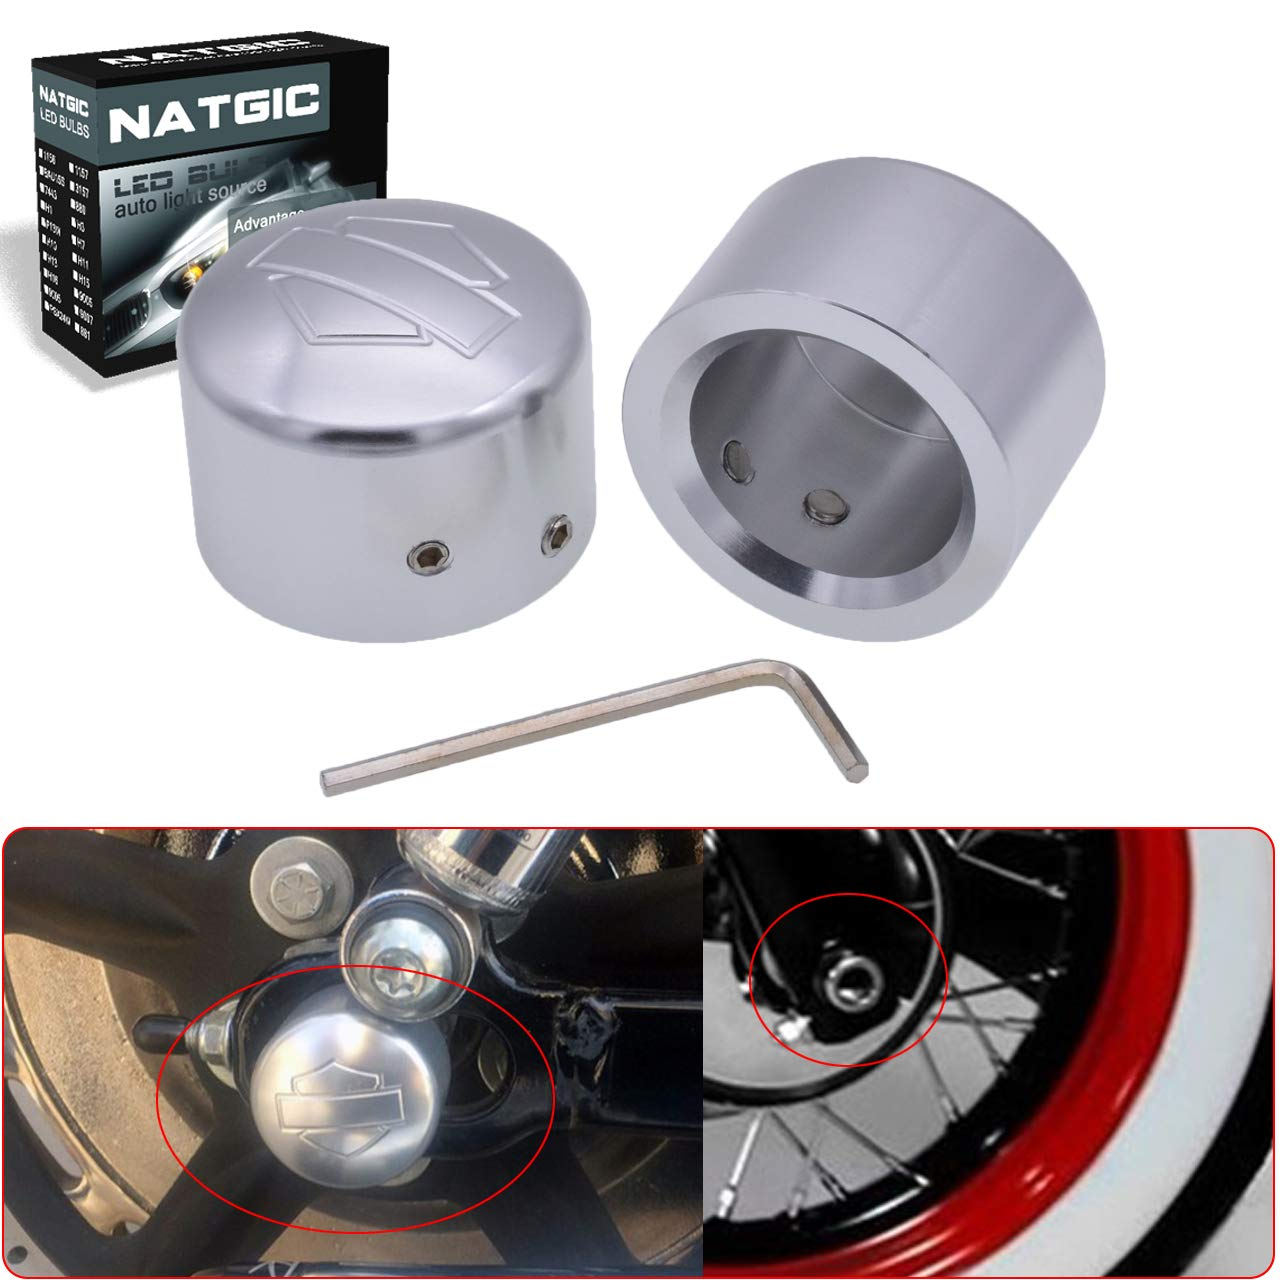 NATGIC Chrome(Silver) Front Axle Nut Cover Axle Caps for Harley Softail Electra Road Glides Sportster - Set